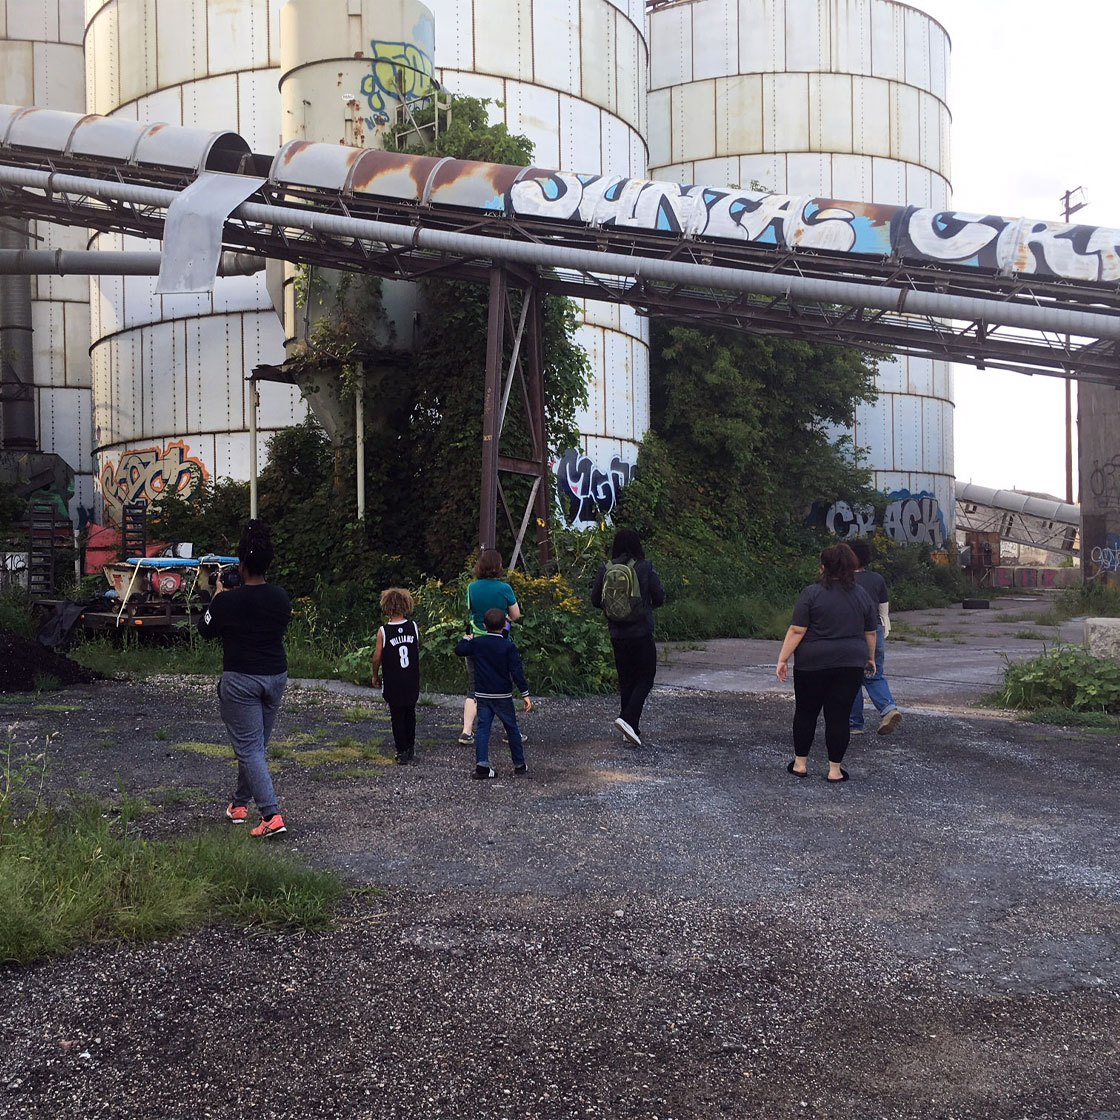 A group of people walking around an industrial area